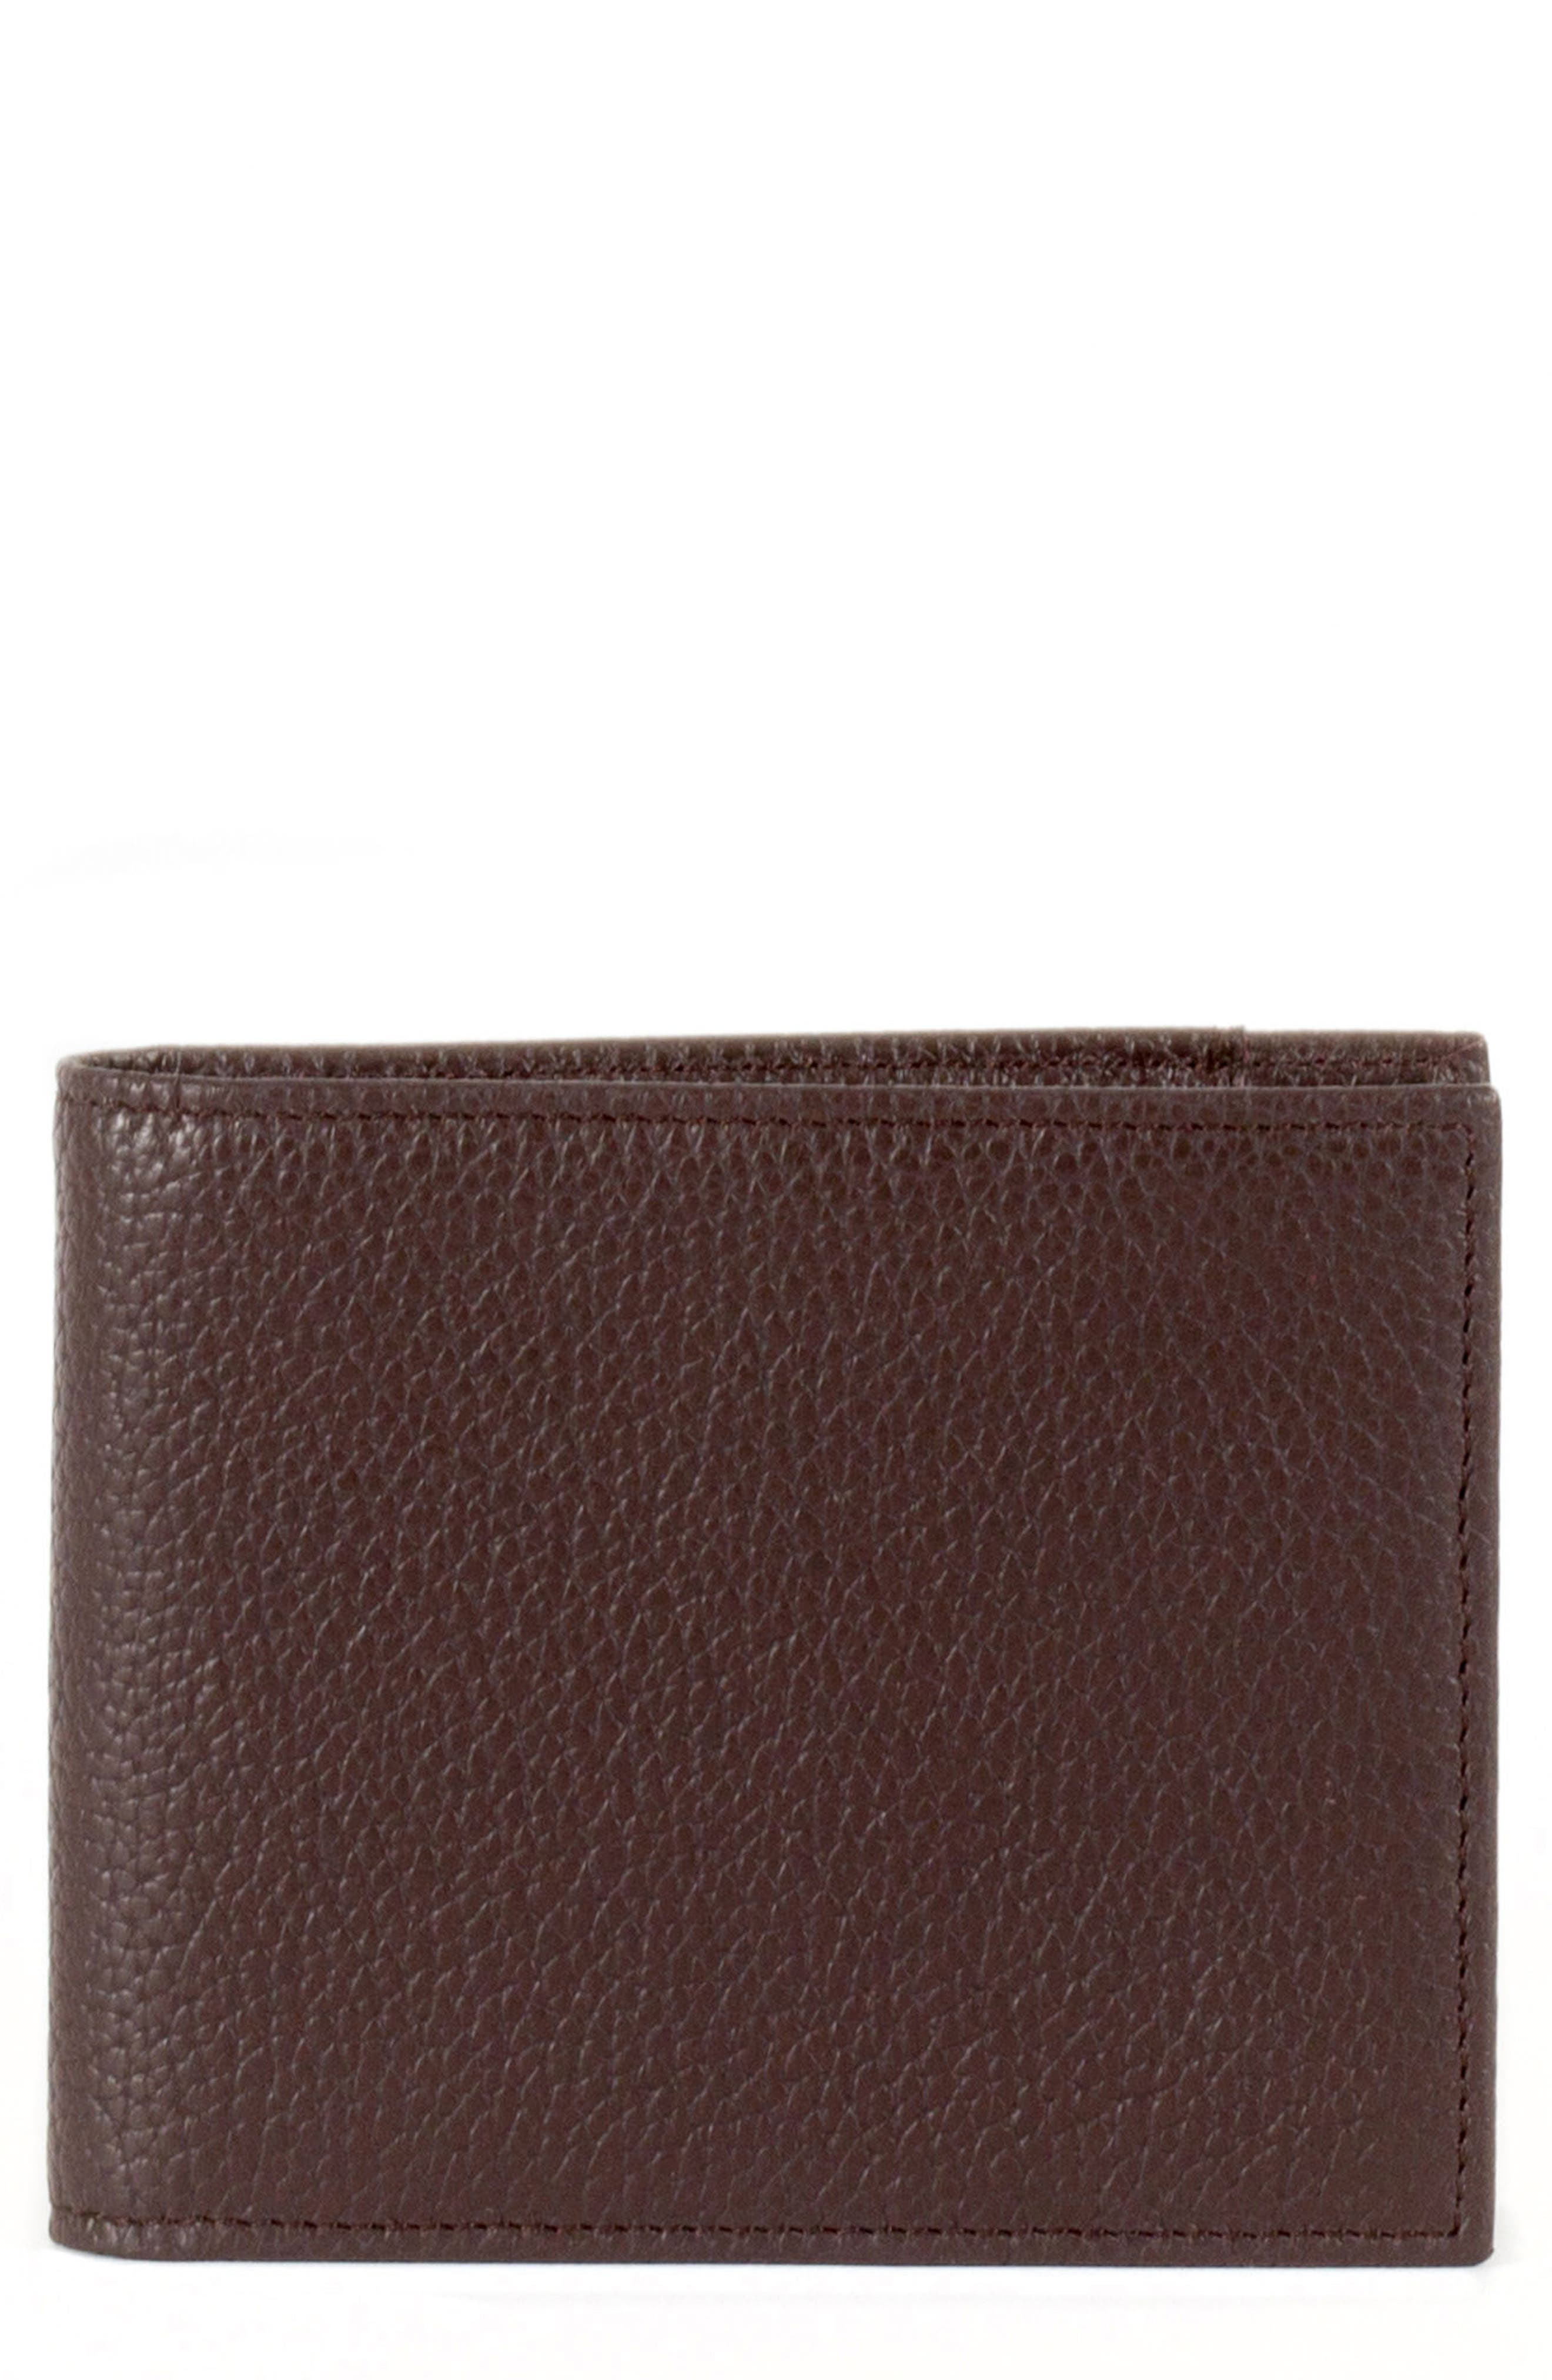 Garth Leather Bifold Wallet,                             Main thumbnail 2, color,